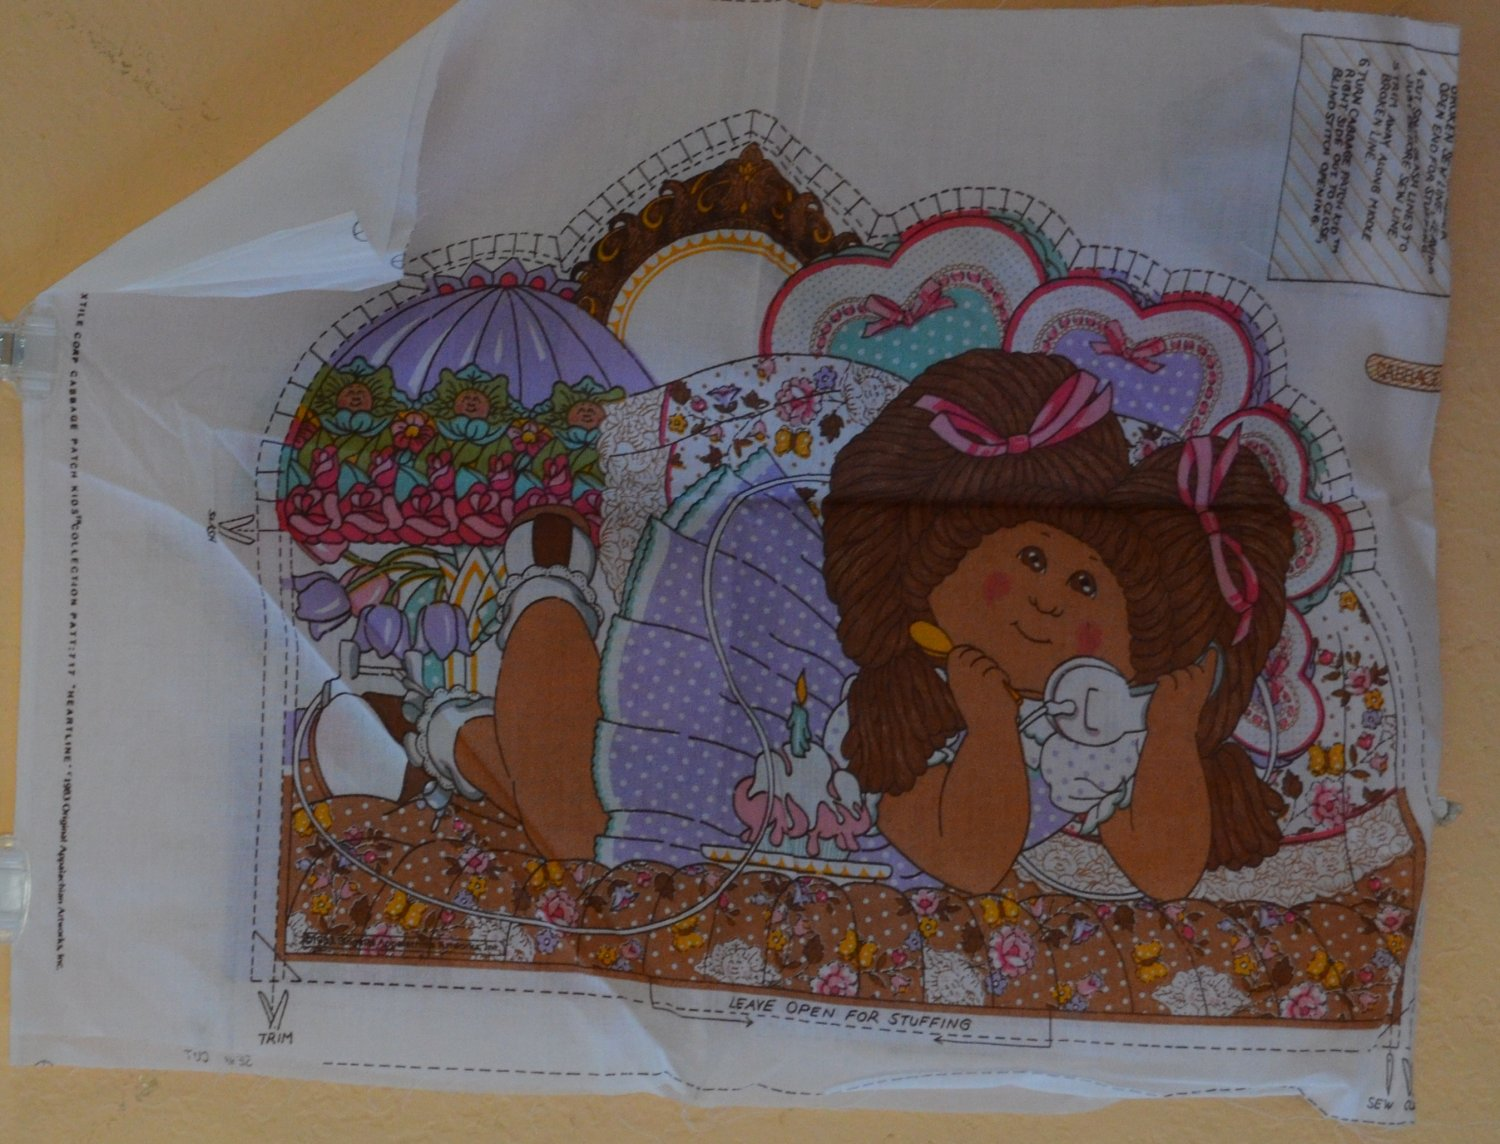 Cabbage Patch Kid Panel Fabric Pillow 1983 Heartline Appalachian Artworks